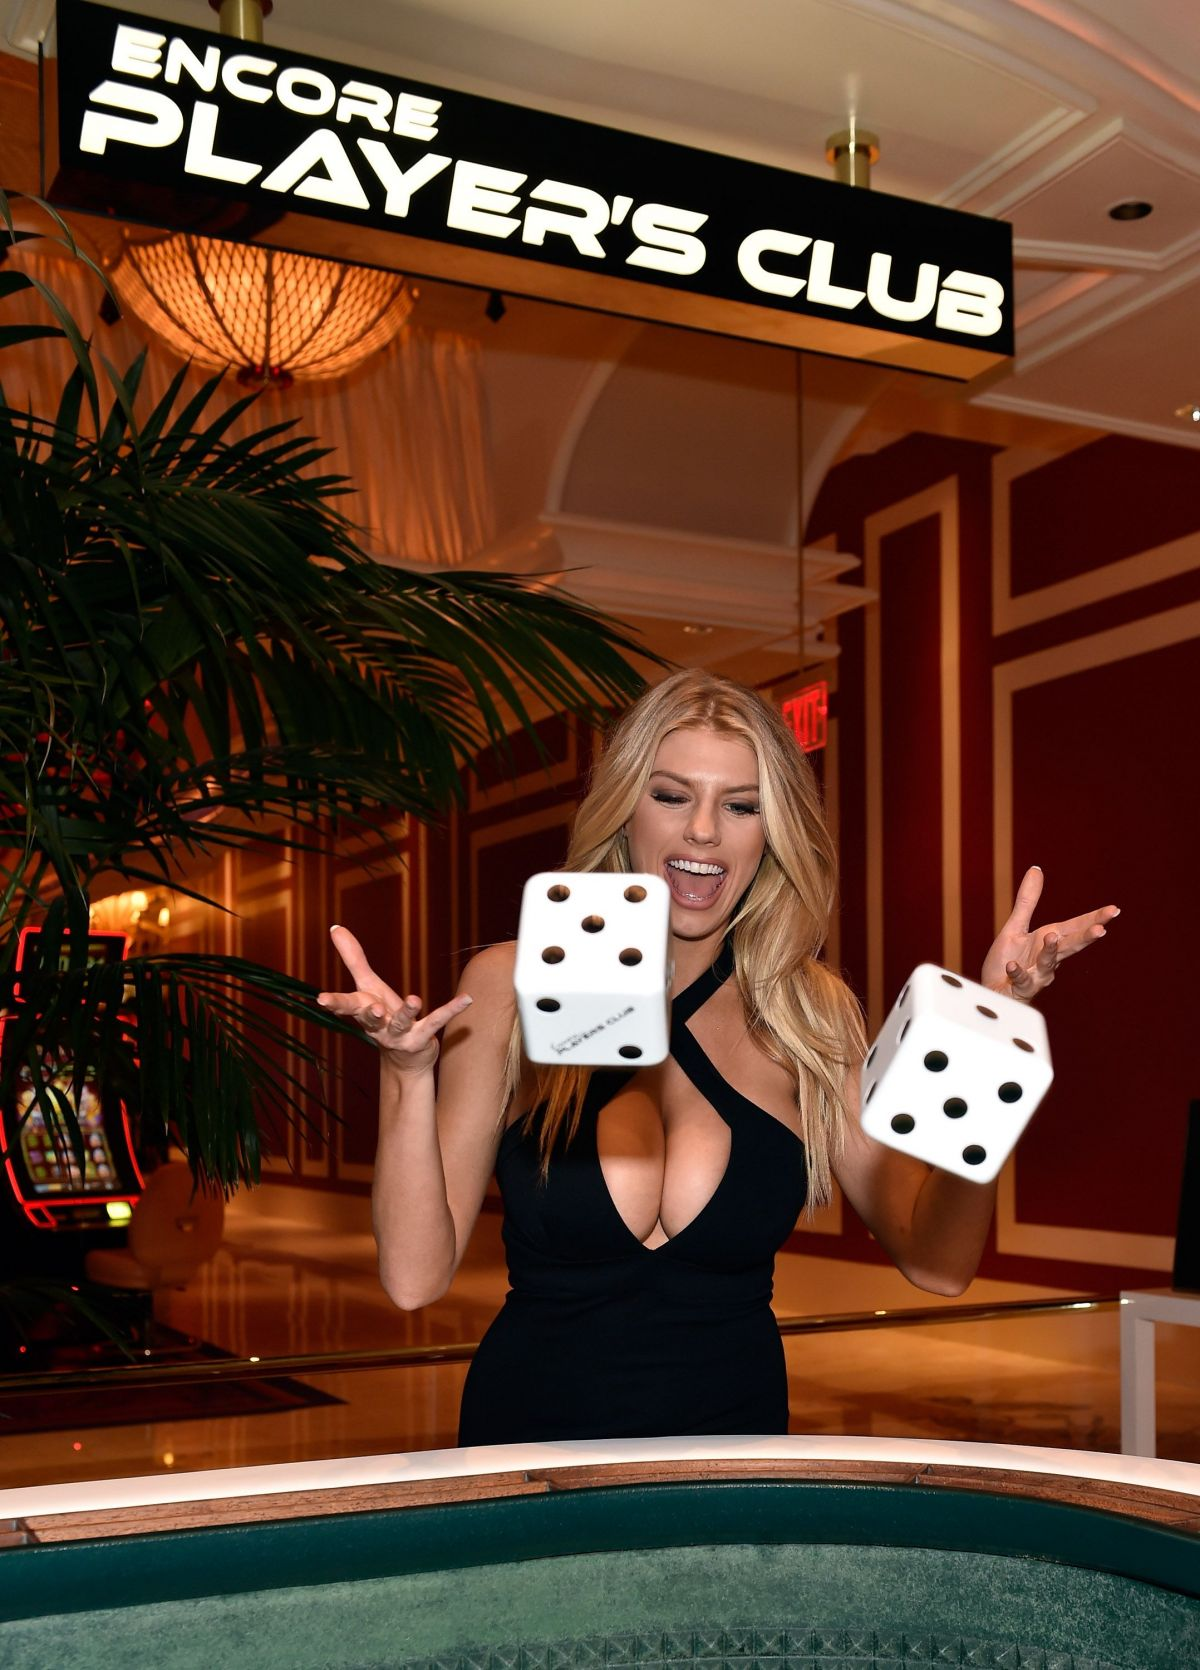 Top 10 Las Vegas Casino Comp Clubs Where To Find The Best Comp Clubs